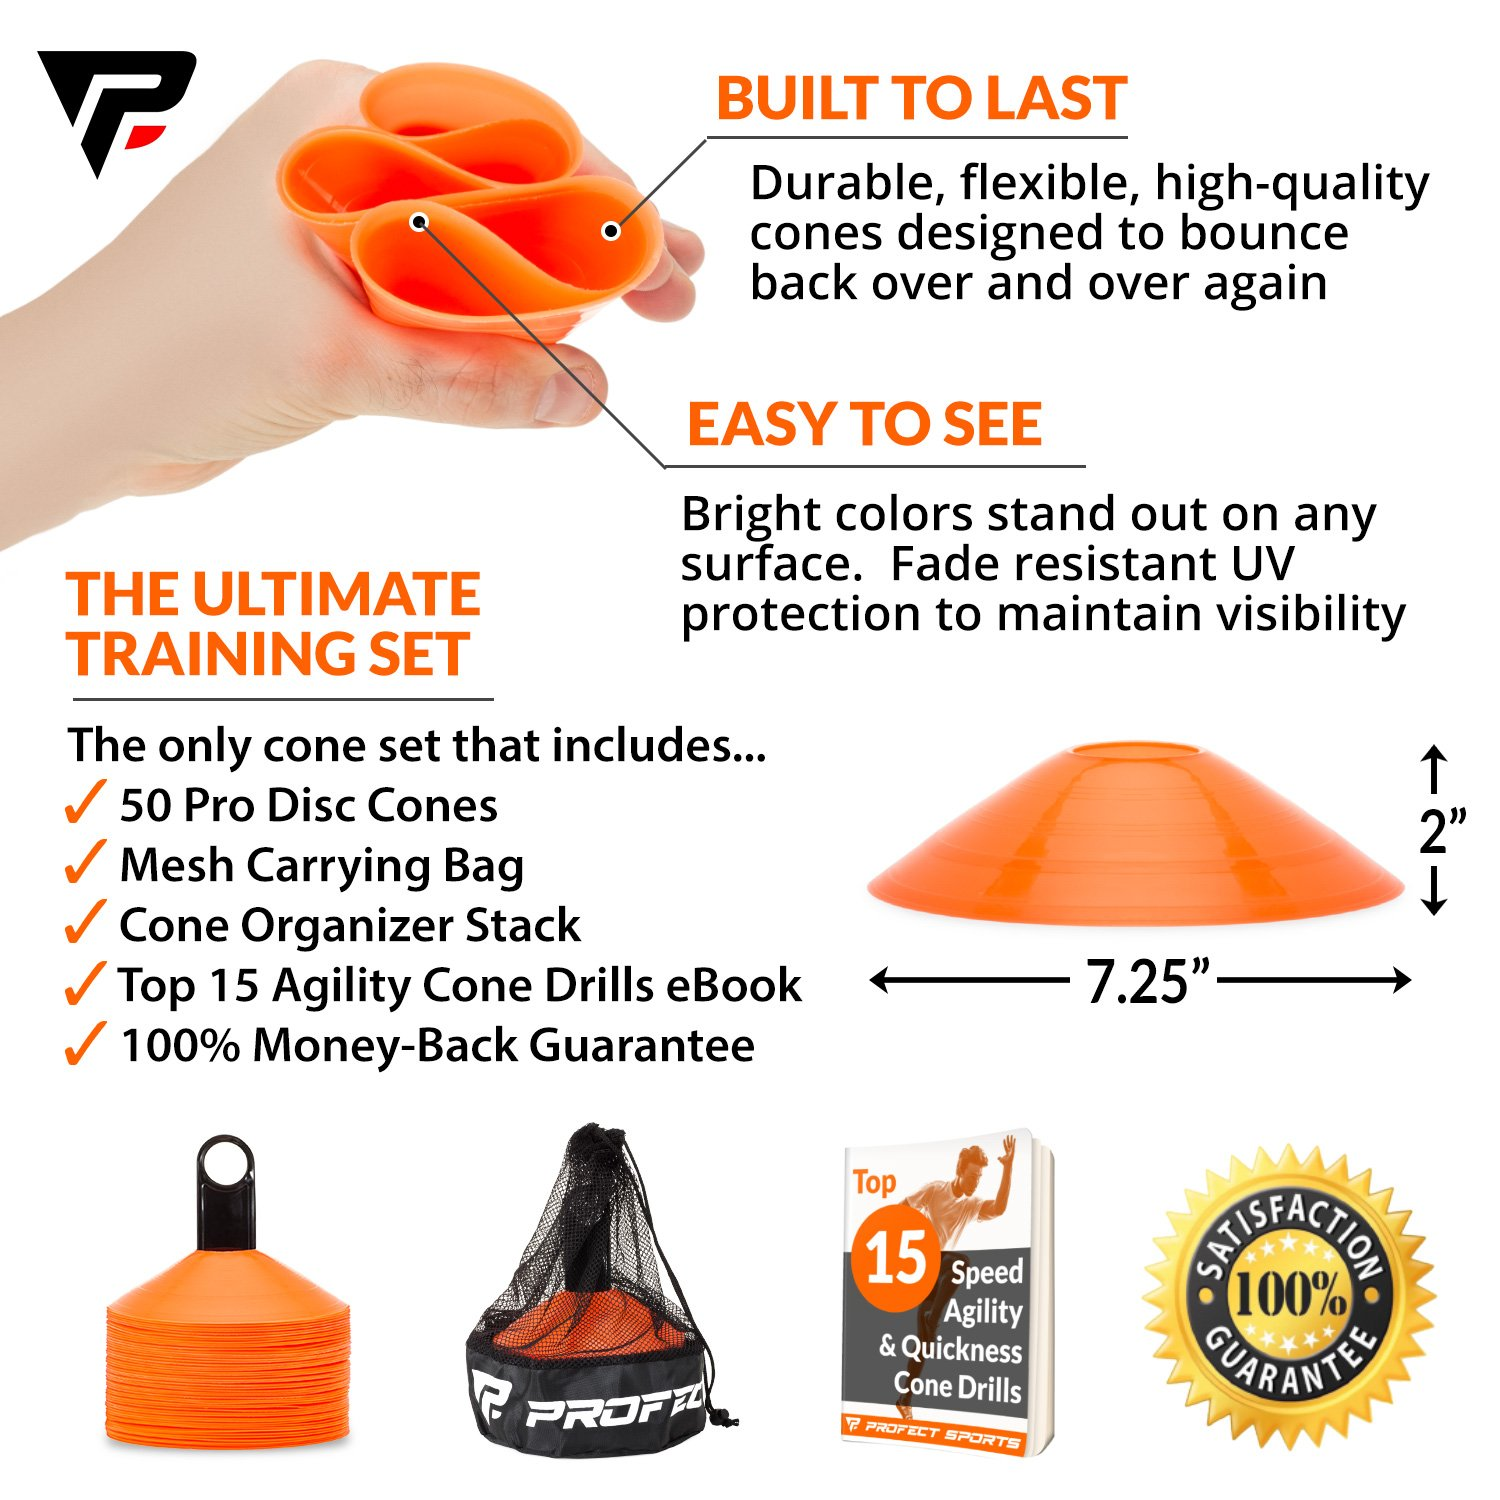 Pro Disc Cones (Set of 50) - Agility Soccer Cones with Carry Bag and Holder for Training, Football, Kids, Sports, Field Cone Markers - Includes Top 15 Drills eBook (Bright Orange) by Profect Sports (Image #2)